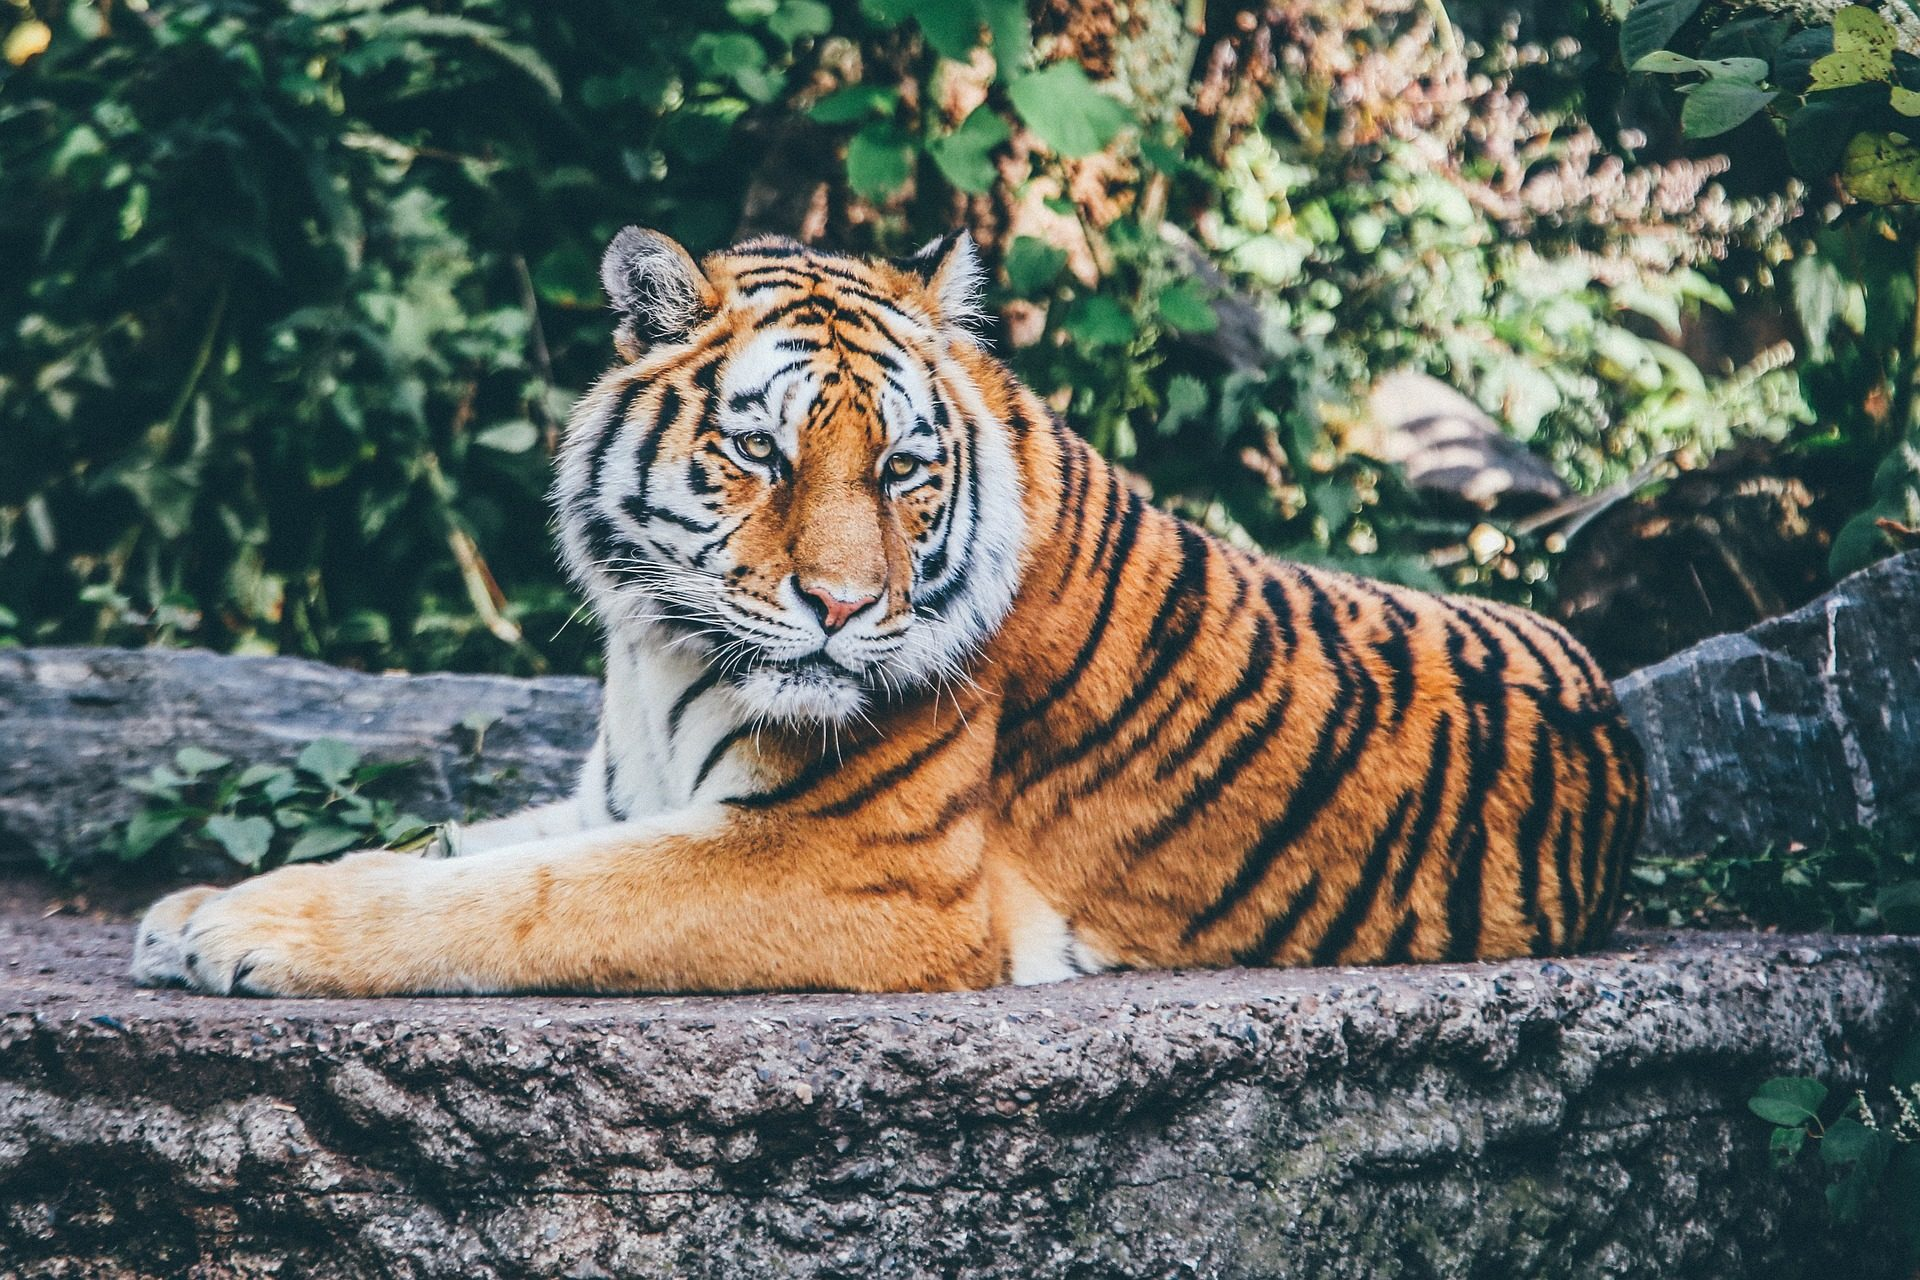 Tigre, félin, Sauvage, Safari, Zoo - Fonds d'écran HD - Professor-falken.com